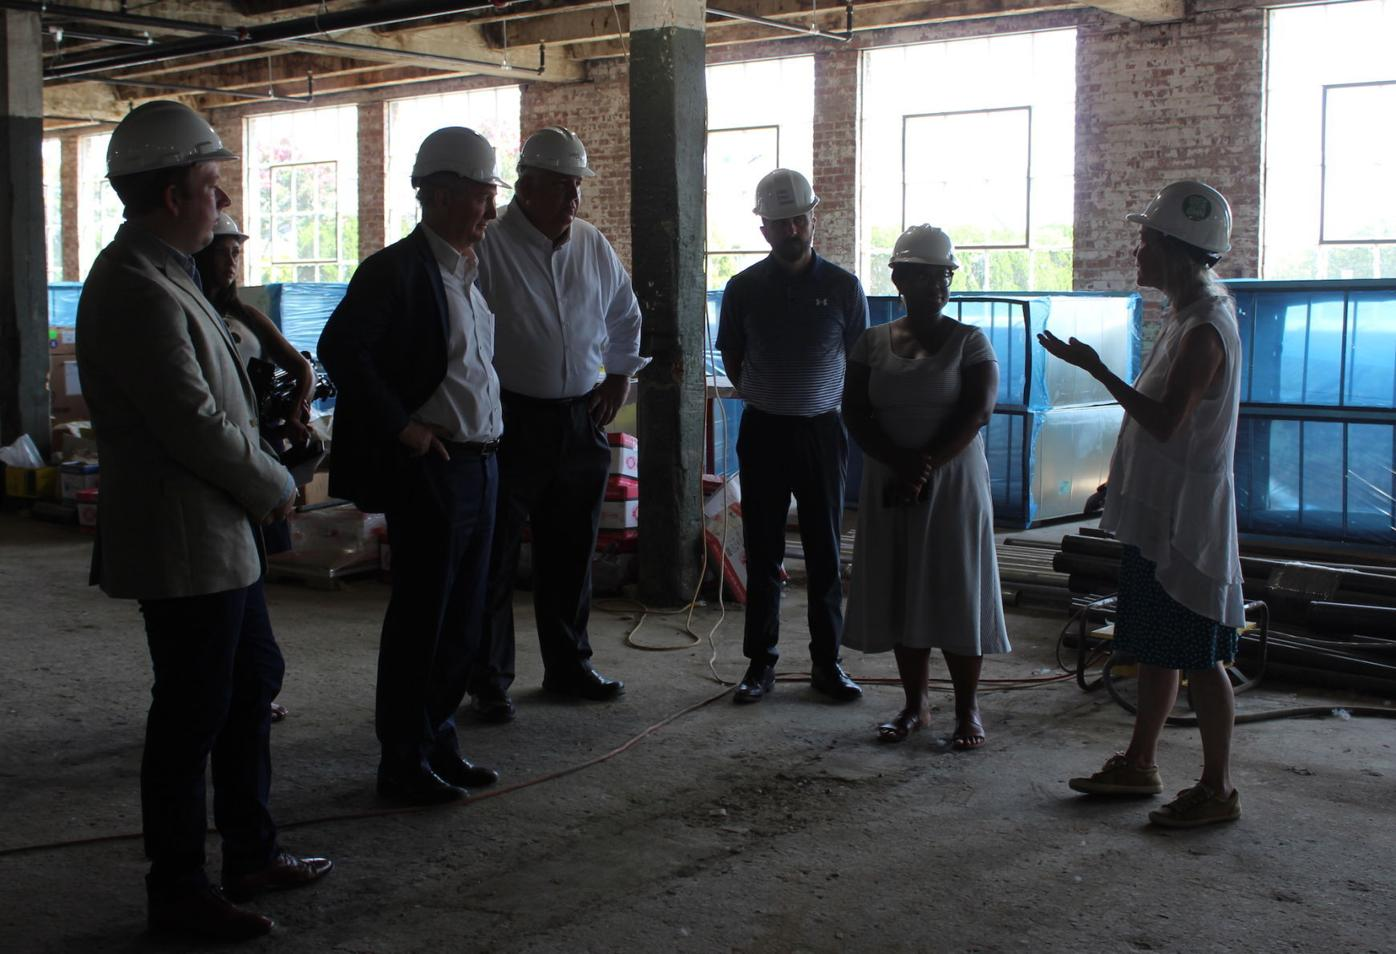 Senator Chris Van Hollen and others tour the Packing House